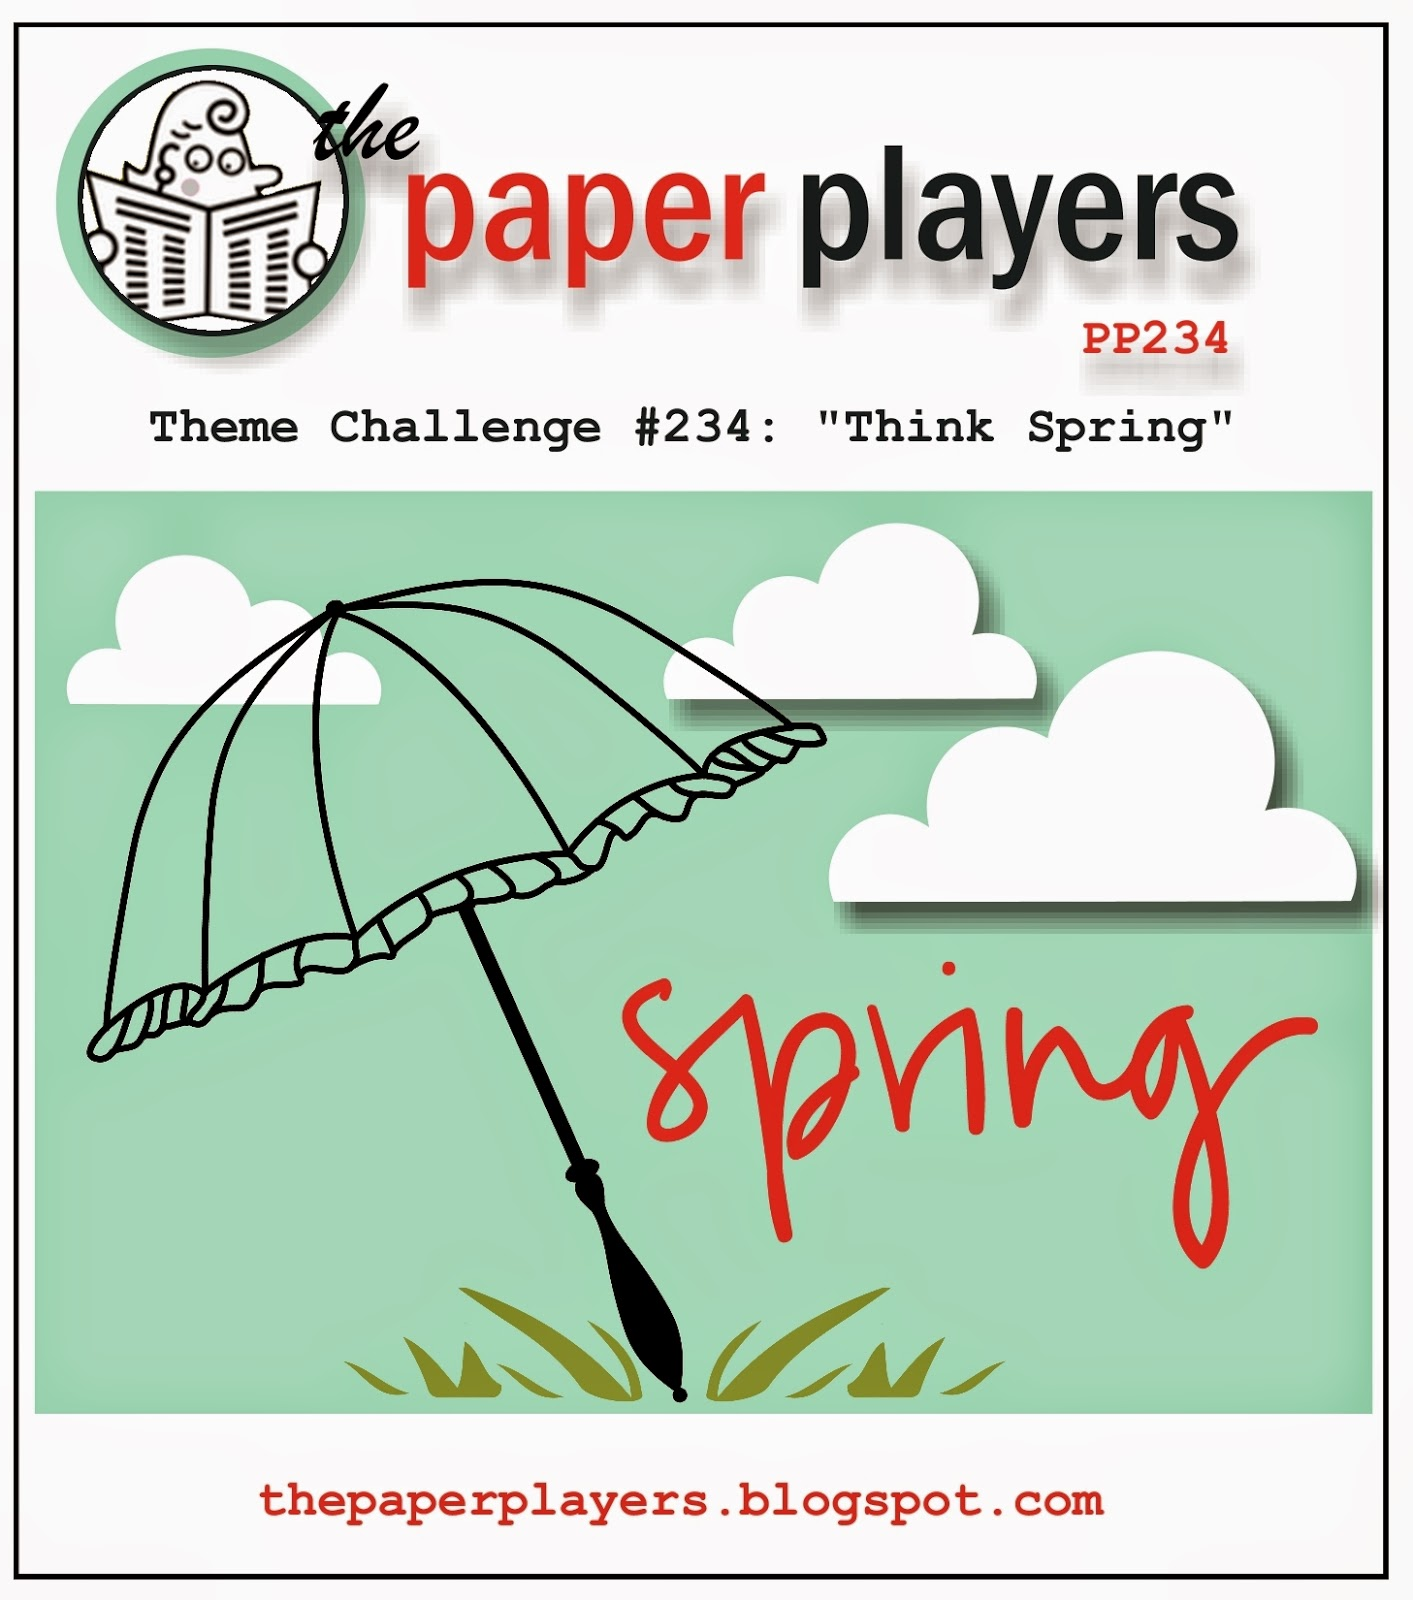 http://thepaperplayers.blogspot.com/2015/03/pp234-lauries-theme-challenge.html